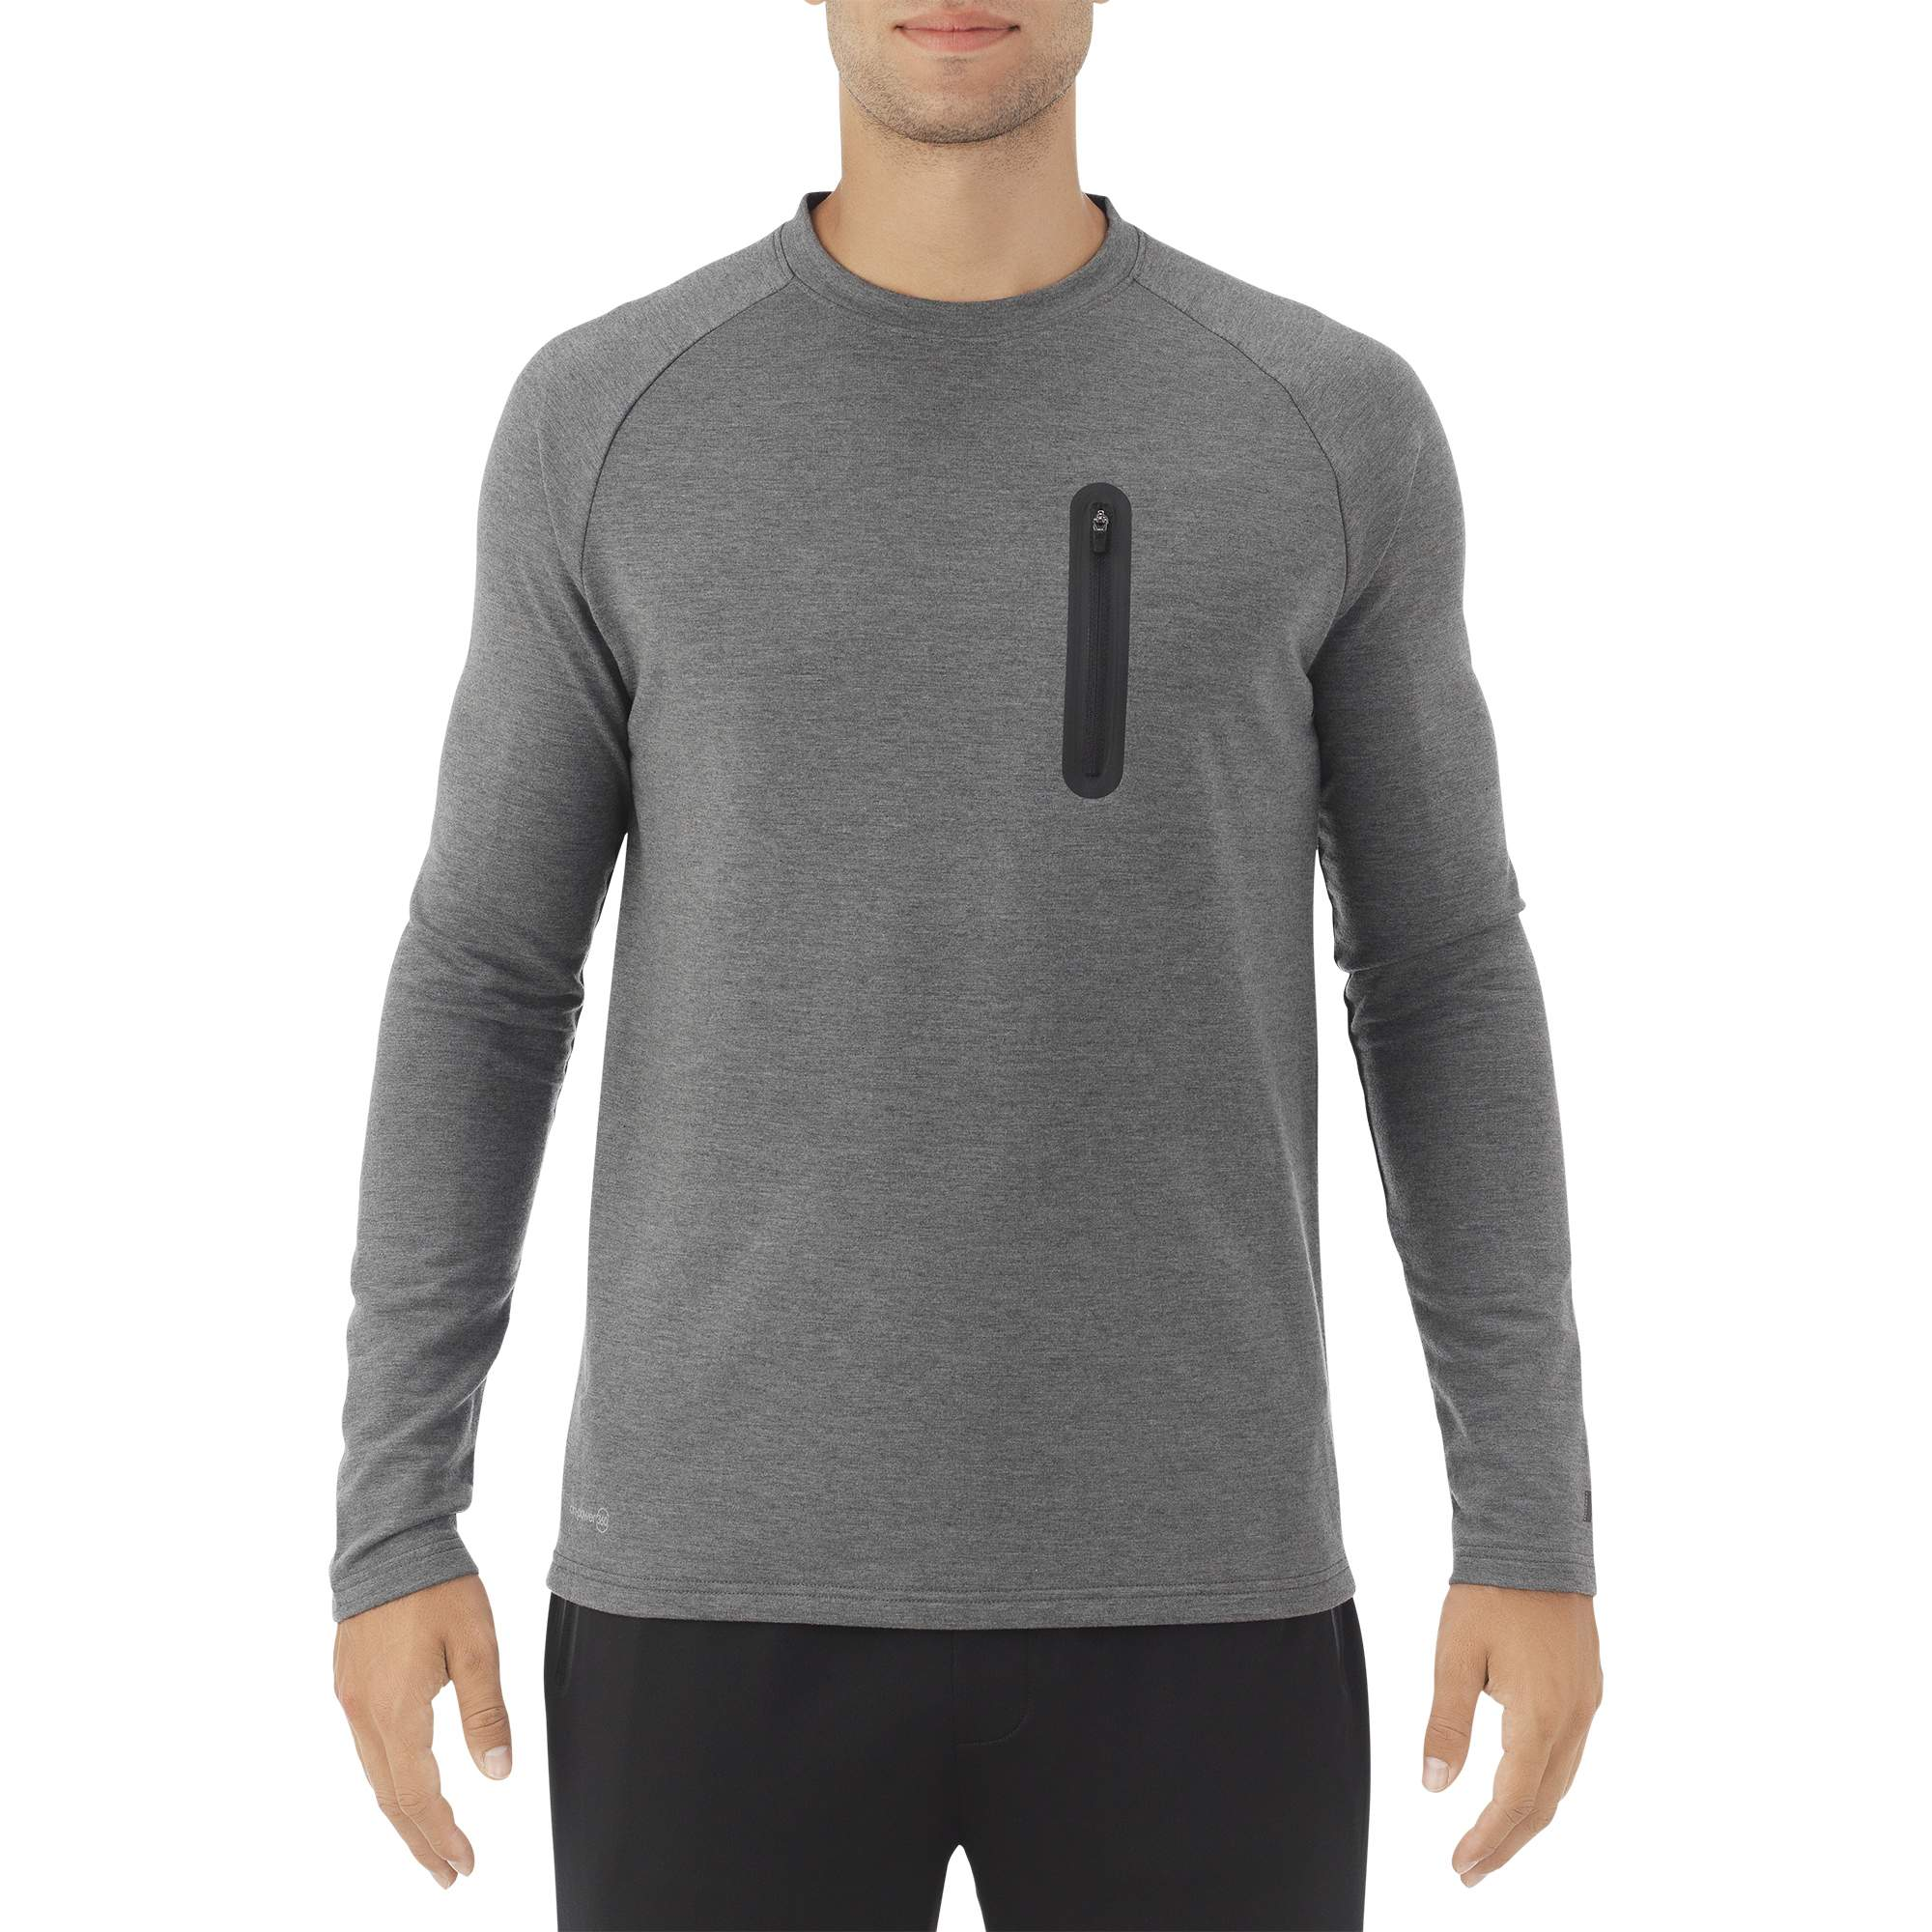 Russell Big Men's Long Sleeve Crew Top